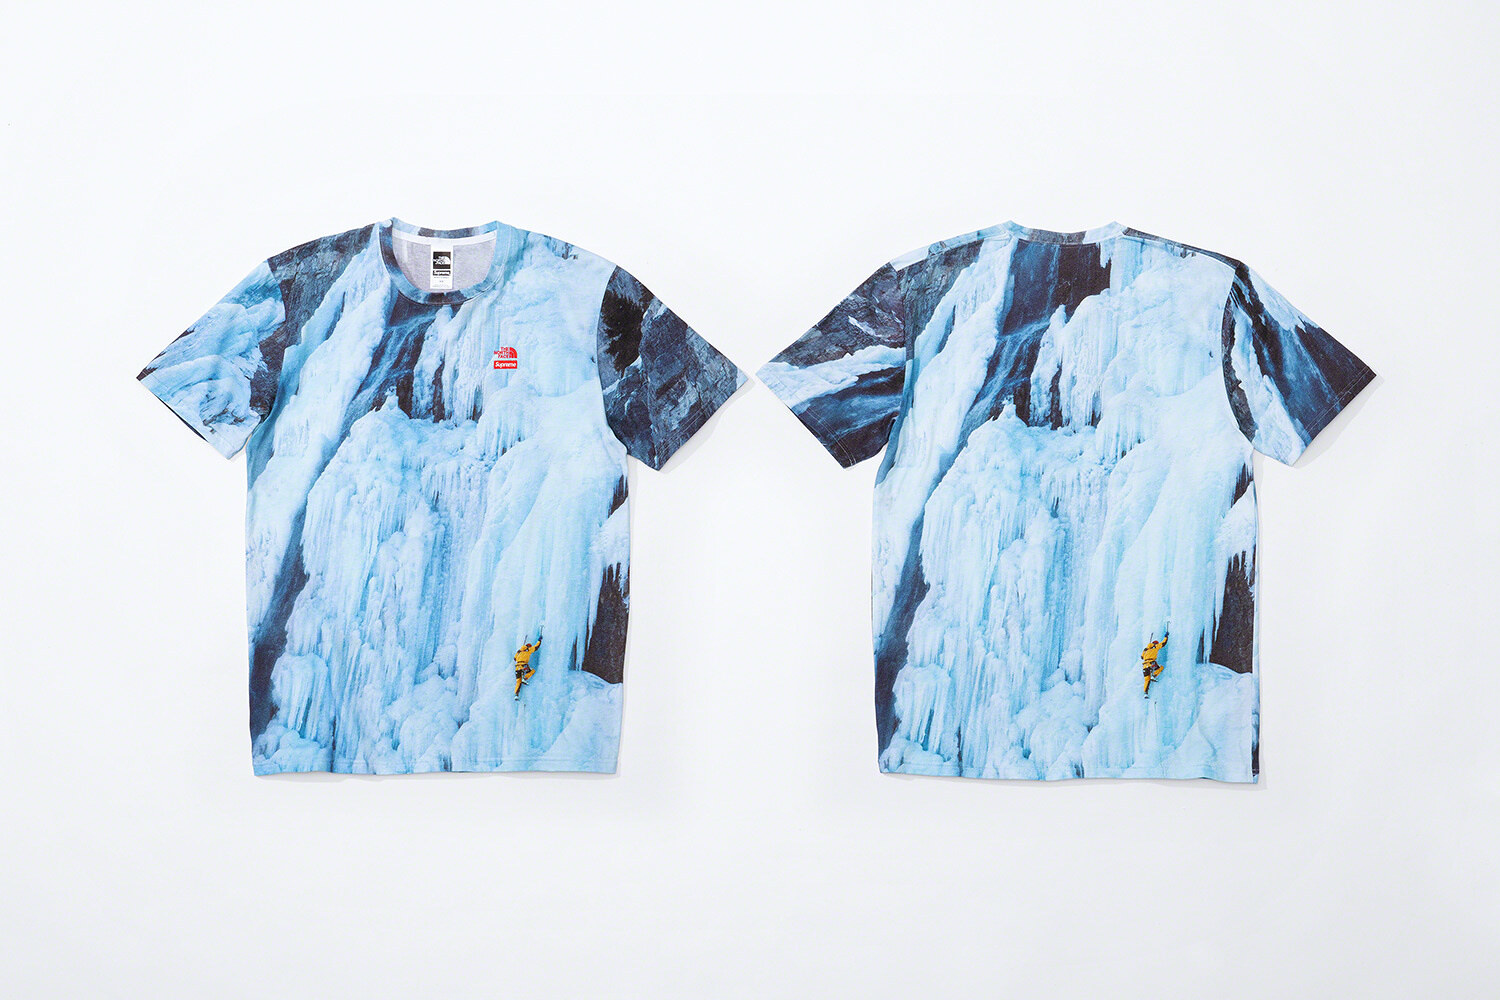 Supreme x The North Face Collaborazione SS21